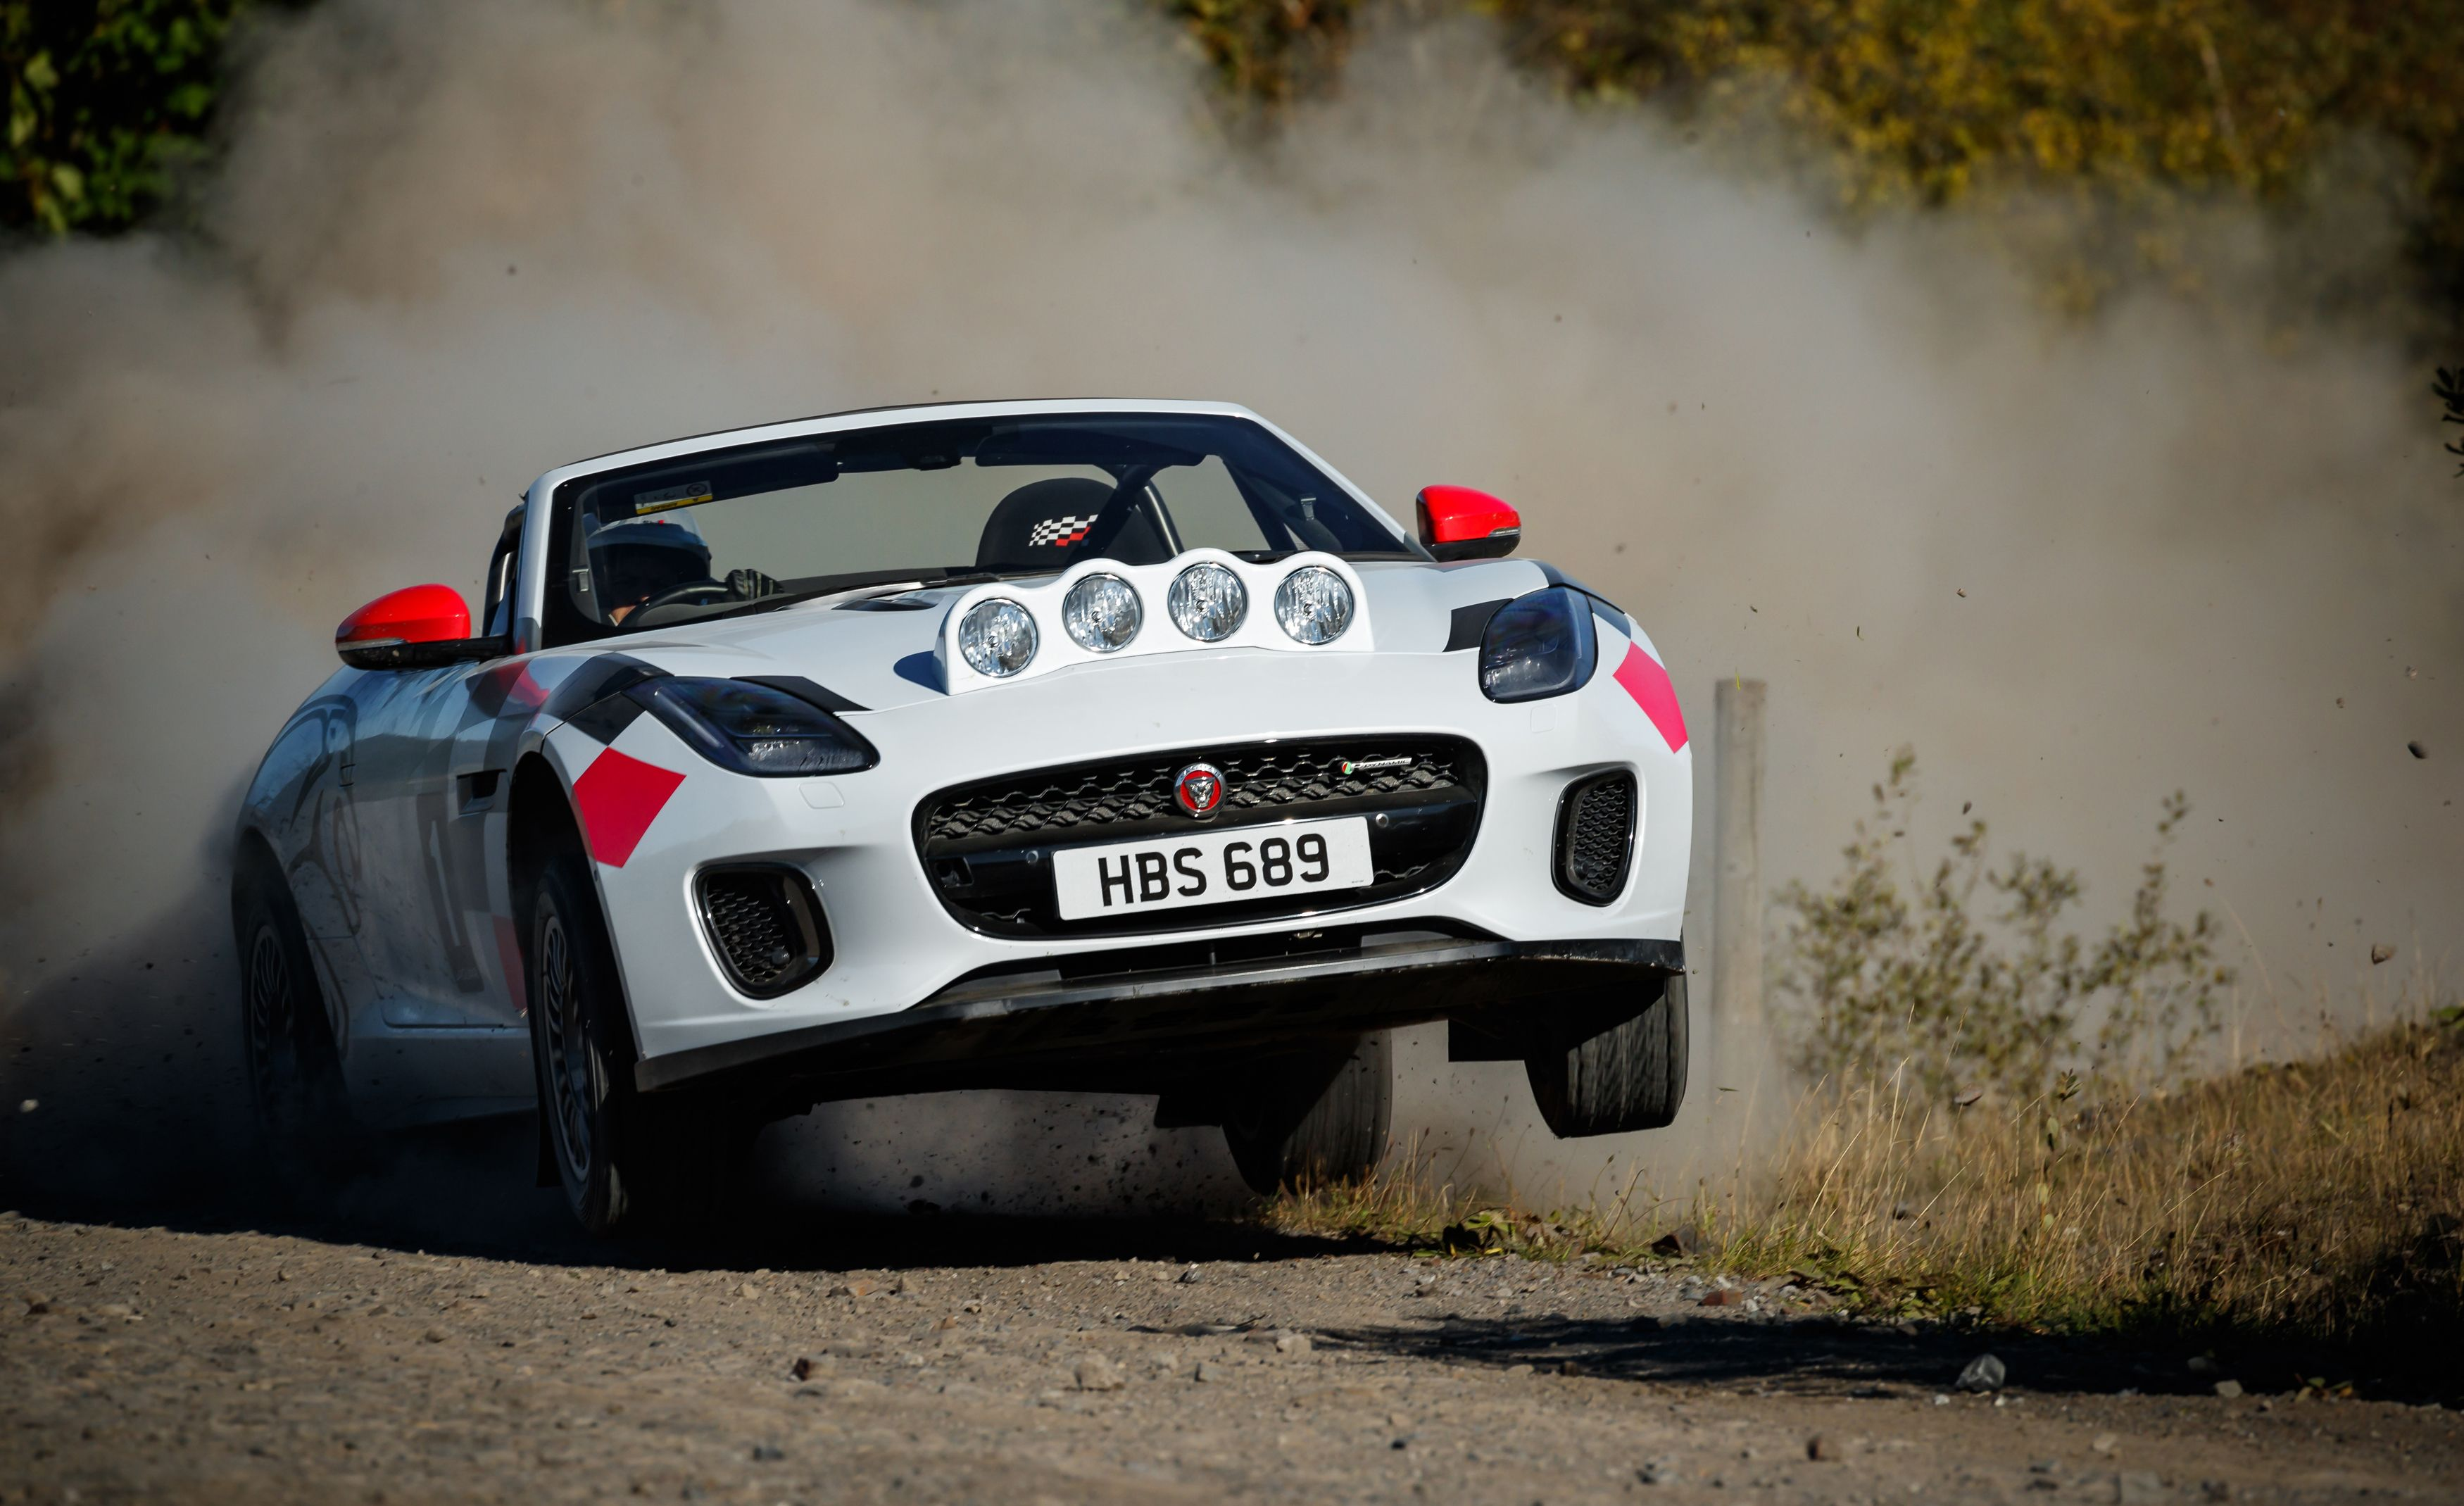 Jaguar Created an Awesome F-type Rally Car to Hype Up Its Latest Special Edition